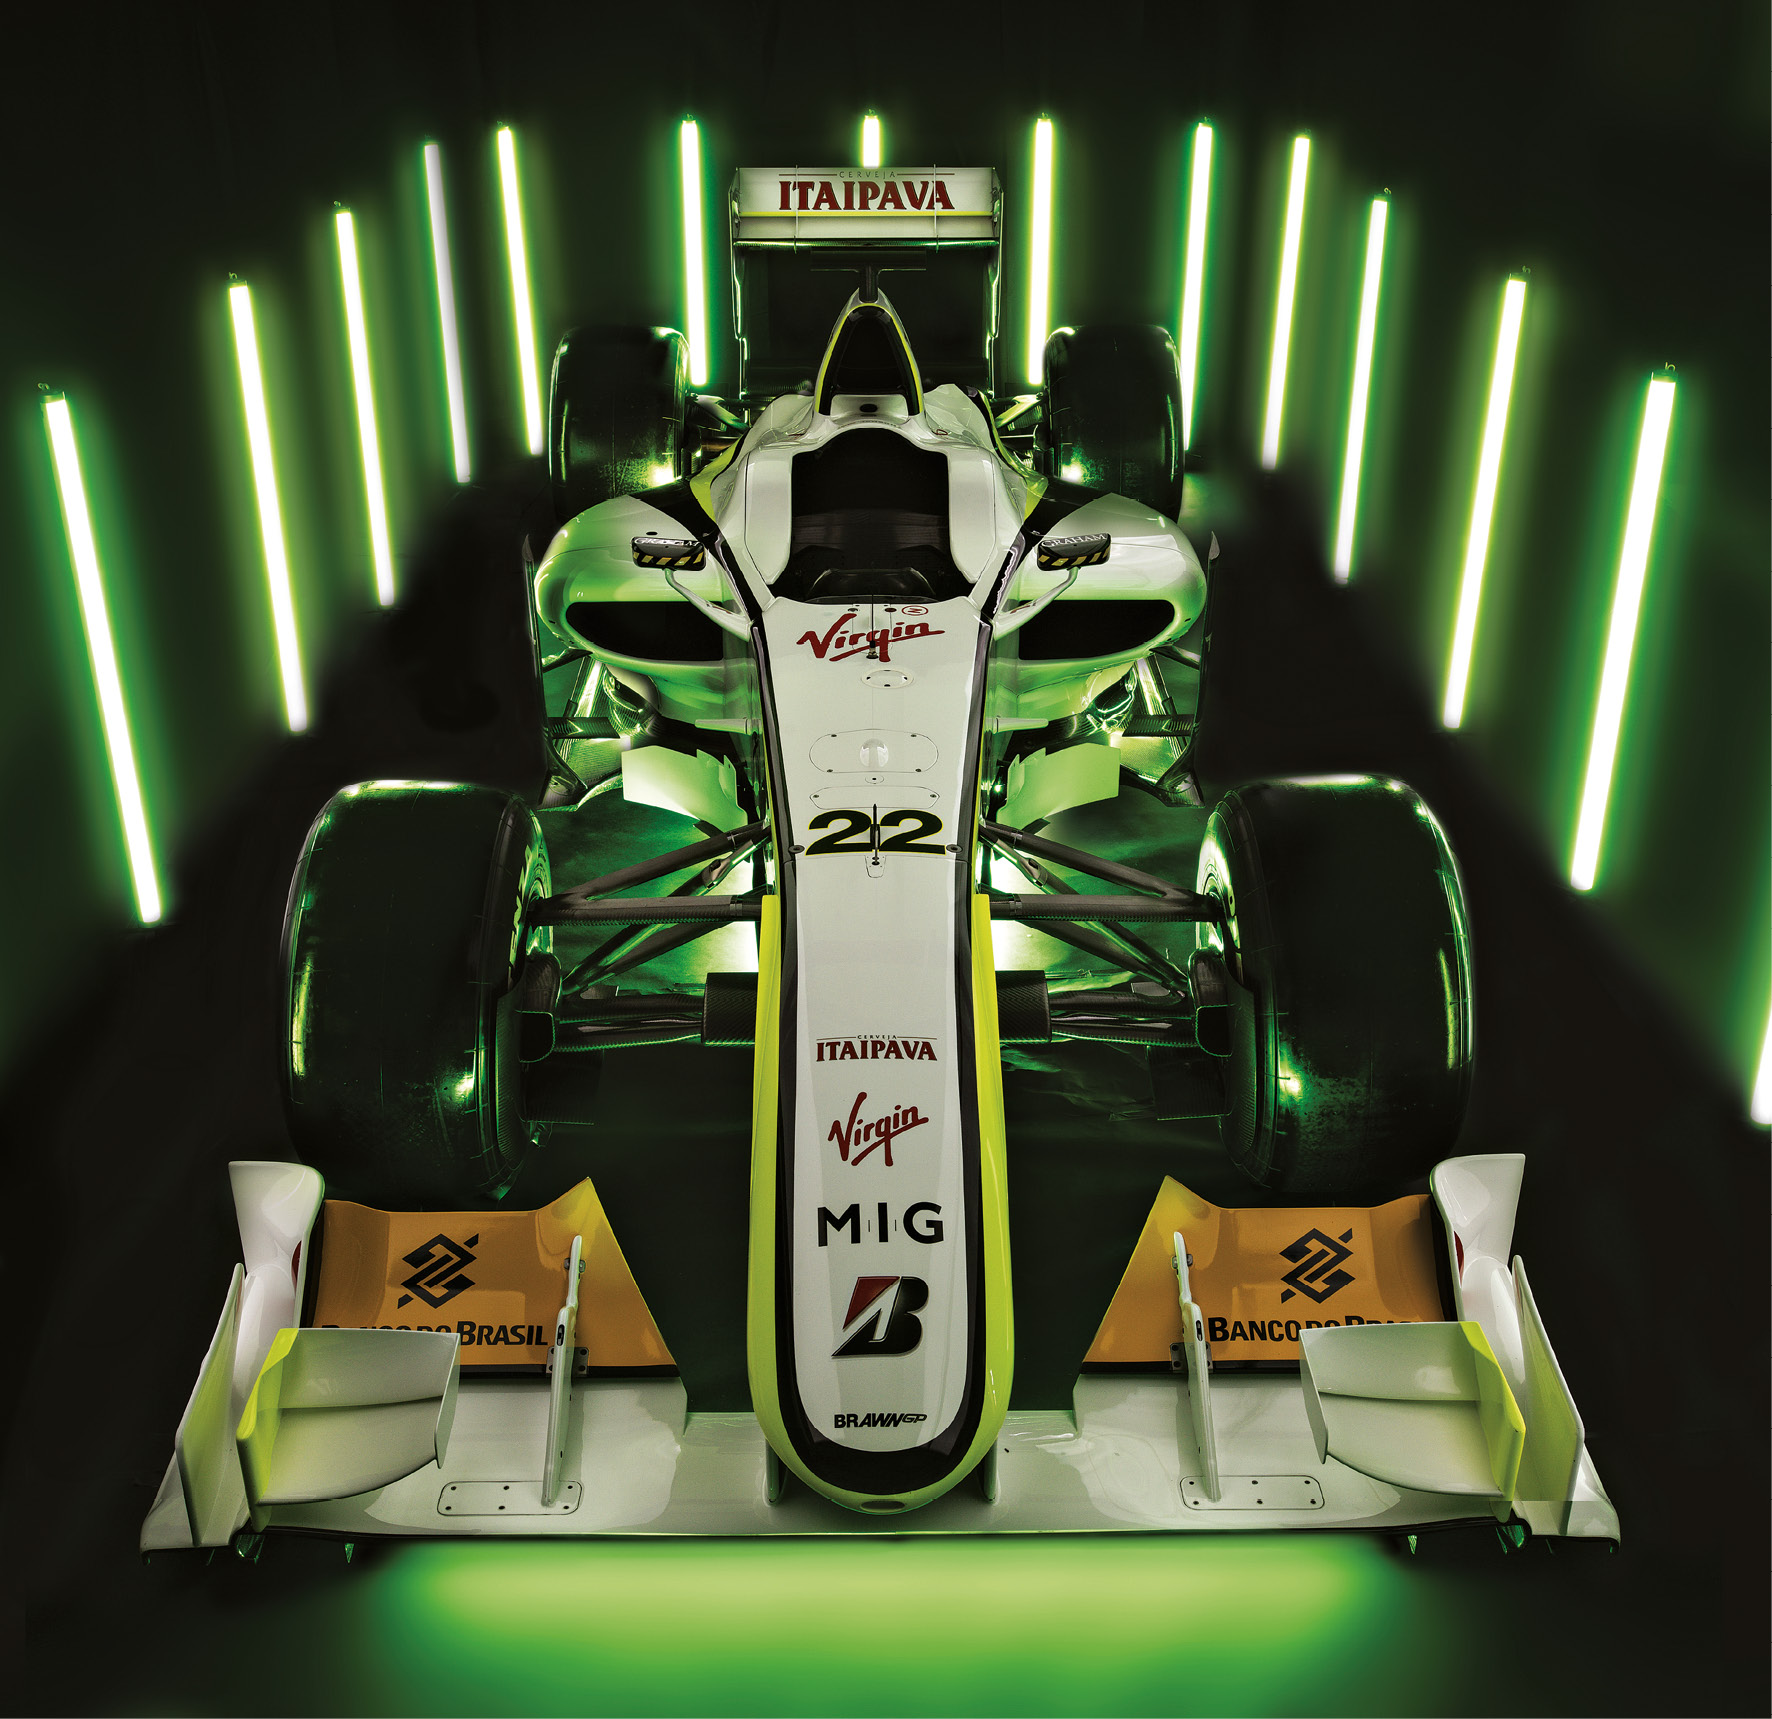 Of the three BGP 001s built, this is chassis 02 – used by Button throughout the 2009 season and now owned by Brawn